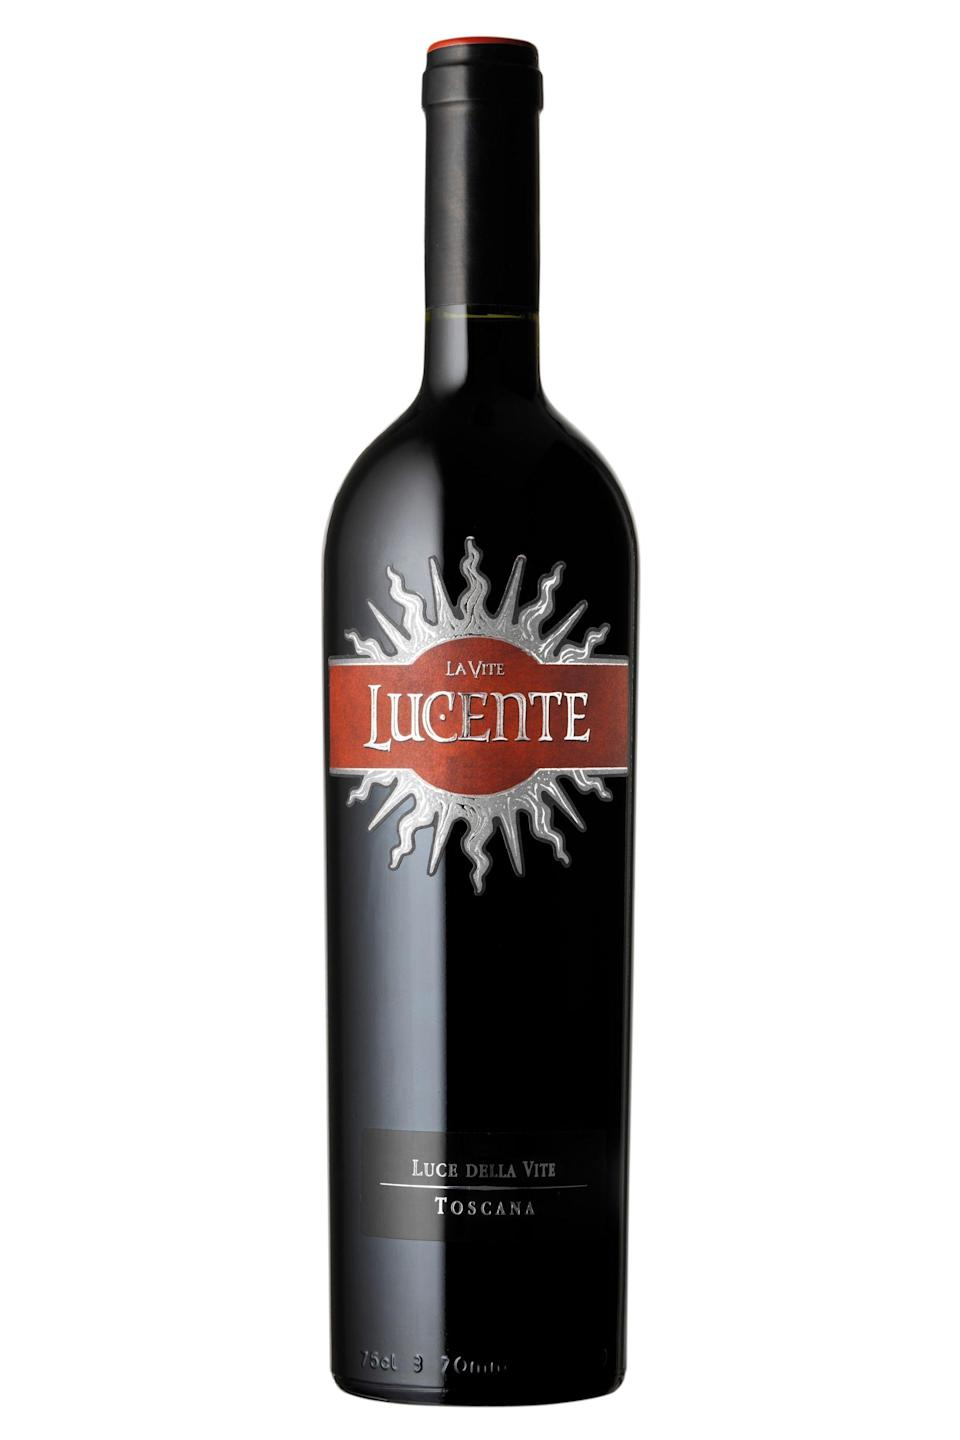 """<p>wine.com</p><p><strong>$23.99</strong></p><p><a href=""""https://go.redirectingat.com?id=74968X1596630&url=https%3A%2F%2Fwww.wine.com%2Fproduct%2Ftenuta-luce-lucente-2017%2F530608&sref=https%3A%2F%2Fwww.redbookmag.com%2Ffood-recipes%2Fg35180620%2Fbest-valentines-day-wine%2F"""" rel=""""nofollow noopener"""" target=""""_blank"""" data-ylk=""""slk:Shop Now"""" class=""""link rapid-noclick-resp"""">Shop Now</a></p><p>""""A blend of the classic Tuscan grape Sangiovese with Merlot, this wine is Italian <em>amore</em> in a glass—lusty with red berry, savory spice and red licorice notes,"""" <a href=""""https://andreawine.com/"""" rel=""""nofollow noopener"""" target=""""_blank"""" data-ylk=""""slk:Master Sommelier Andrea Robinson"""" class=""""link rapid-noclick-resp"""">Master Sommelier Andrea Robinson</a> says.</p>"""